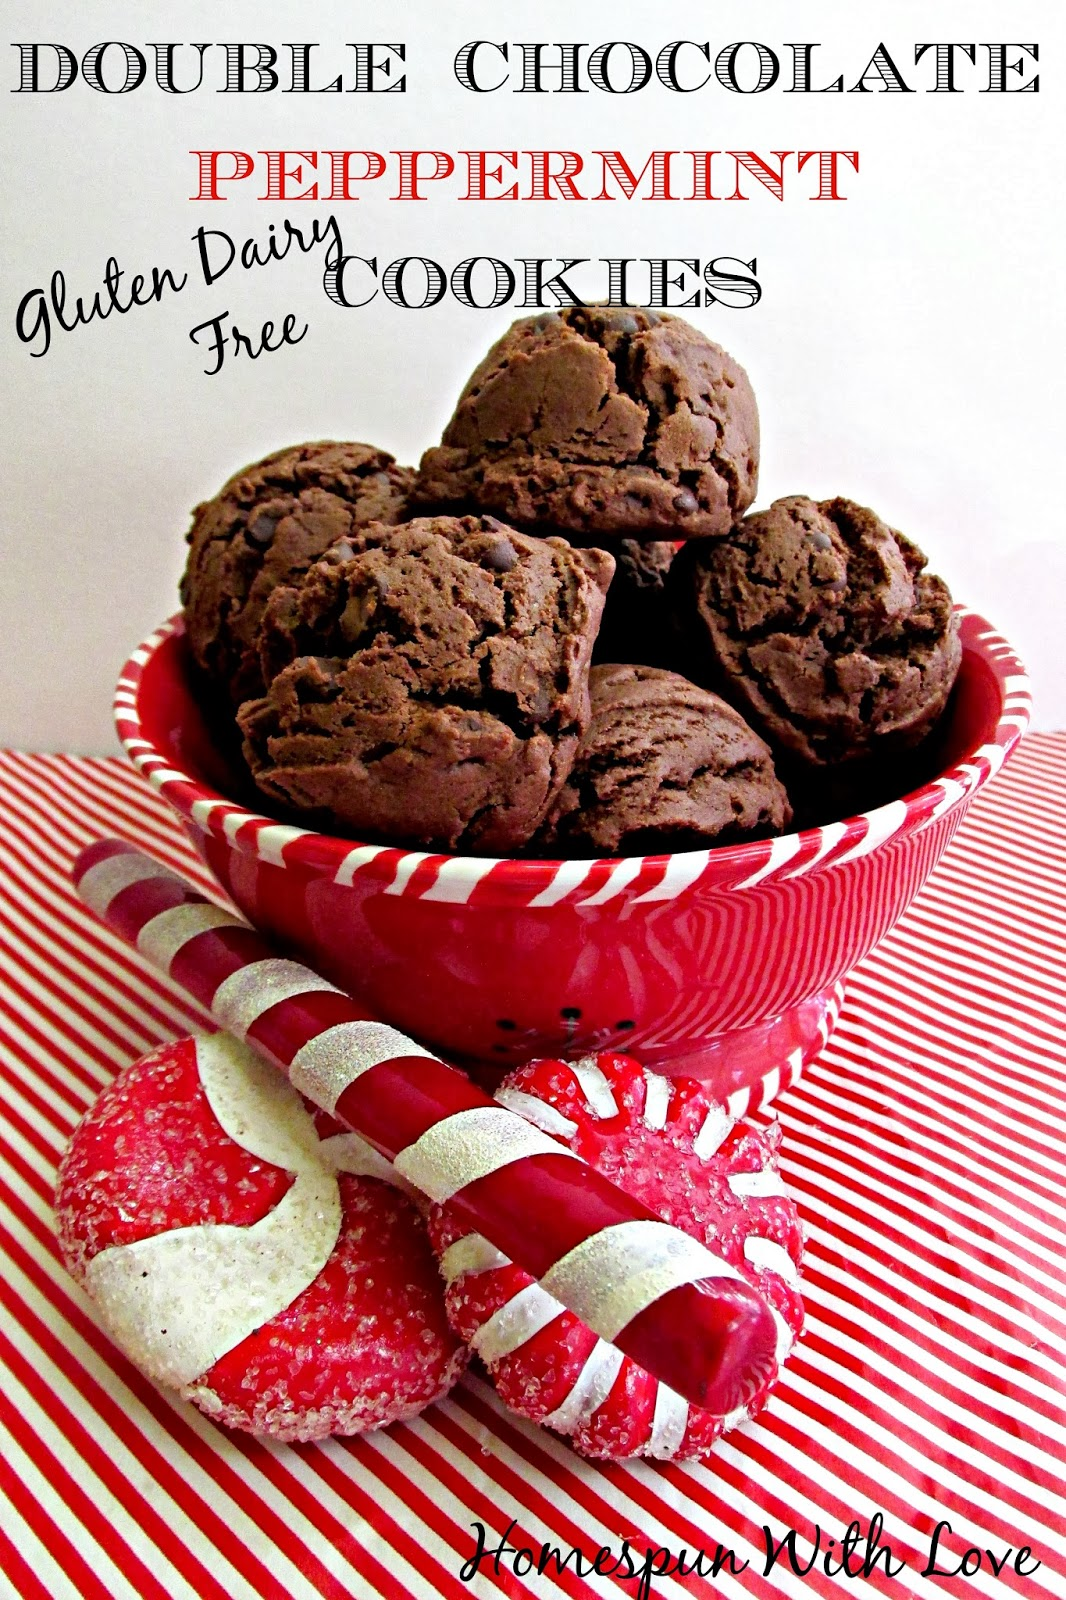 Homespun With Love: Double Chocolate Peppermint Cookies ~ Gluten ...